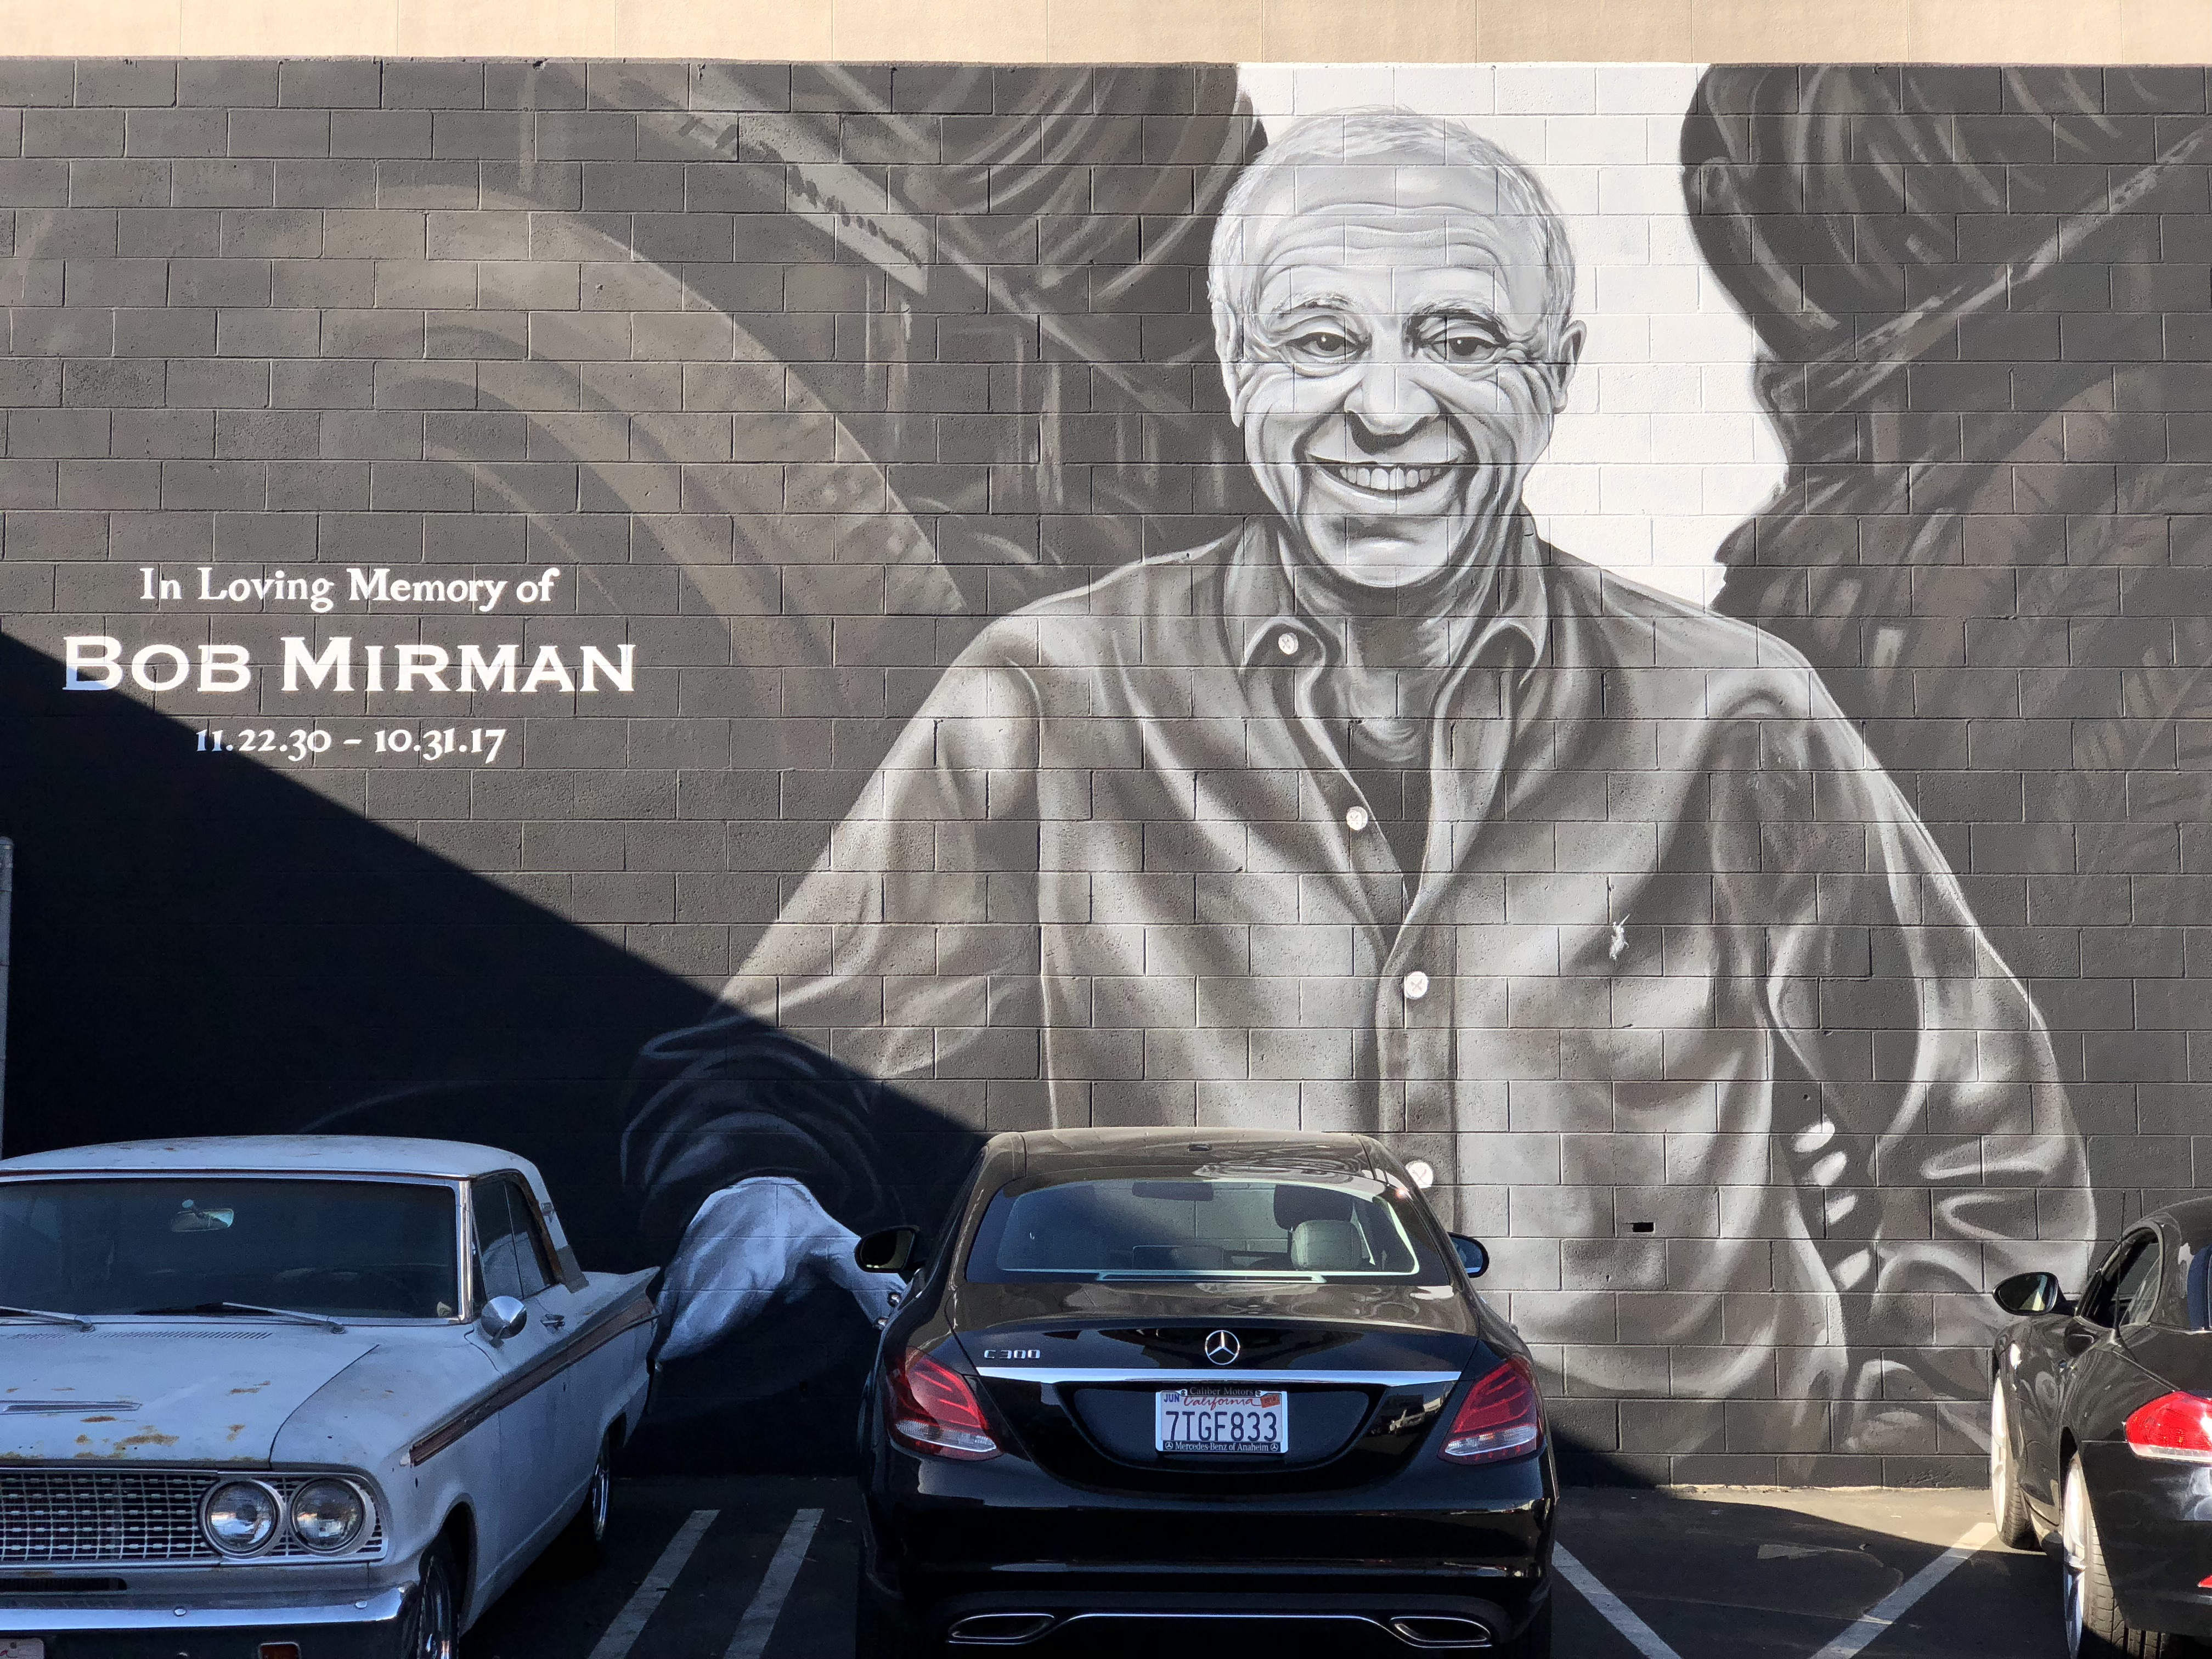 West Coast Tire Pays Tribute to Its Founder Bob Mirman